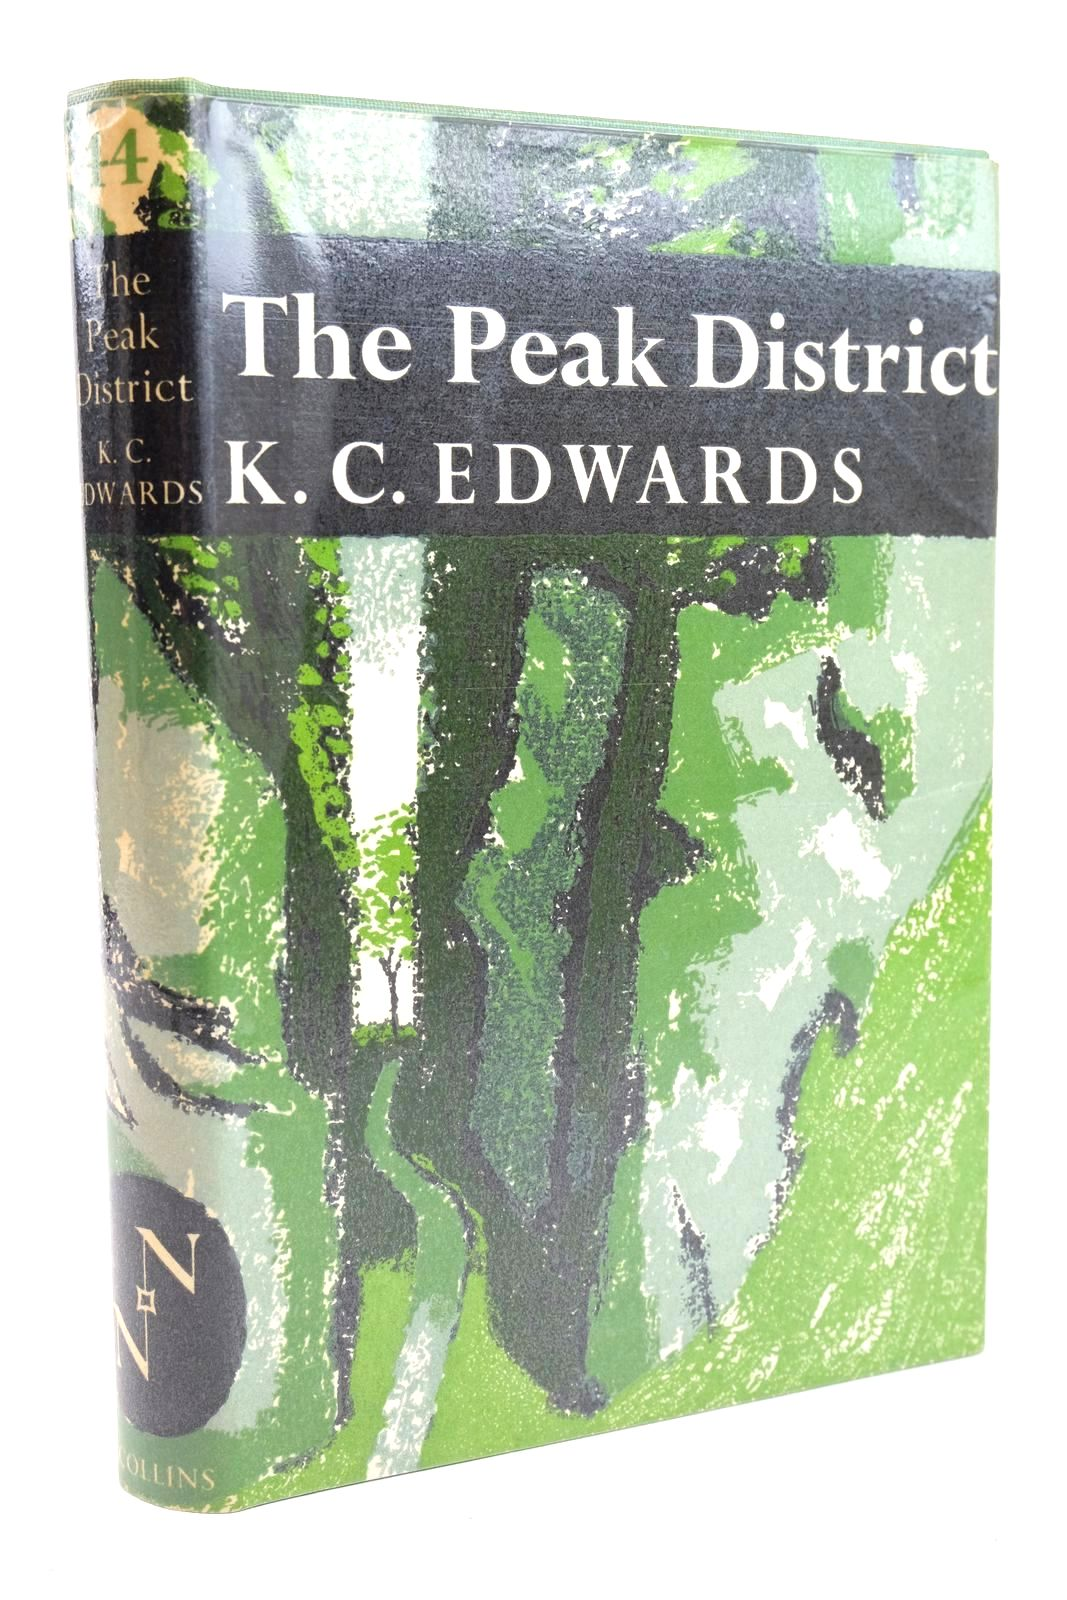 Photo of THE PEAK DISTRICT (NN 44) written by Edwards, K.C. Swinnerton, H.H. Hall, R.H. published by Collins (STOCK CODE: 1319924)  for sale by Stella & Rose's Books